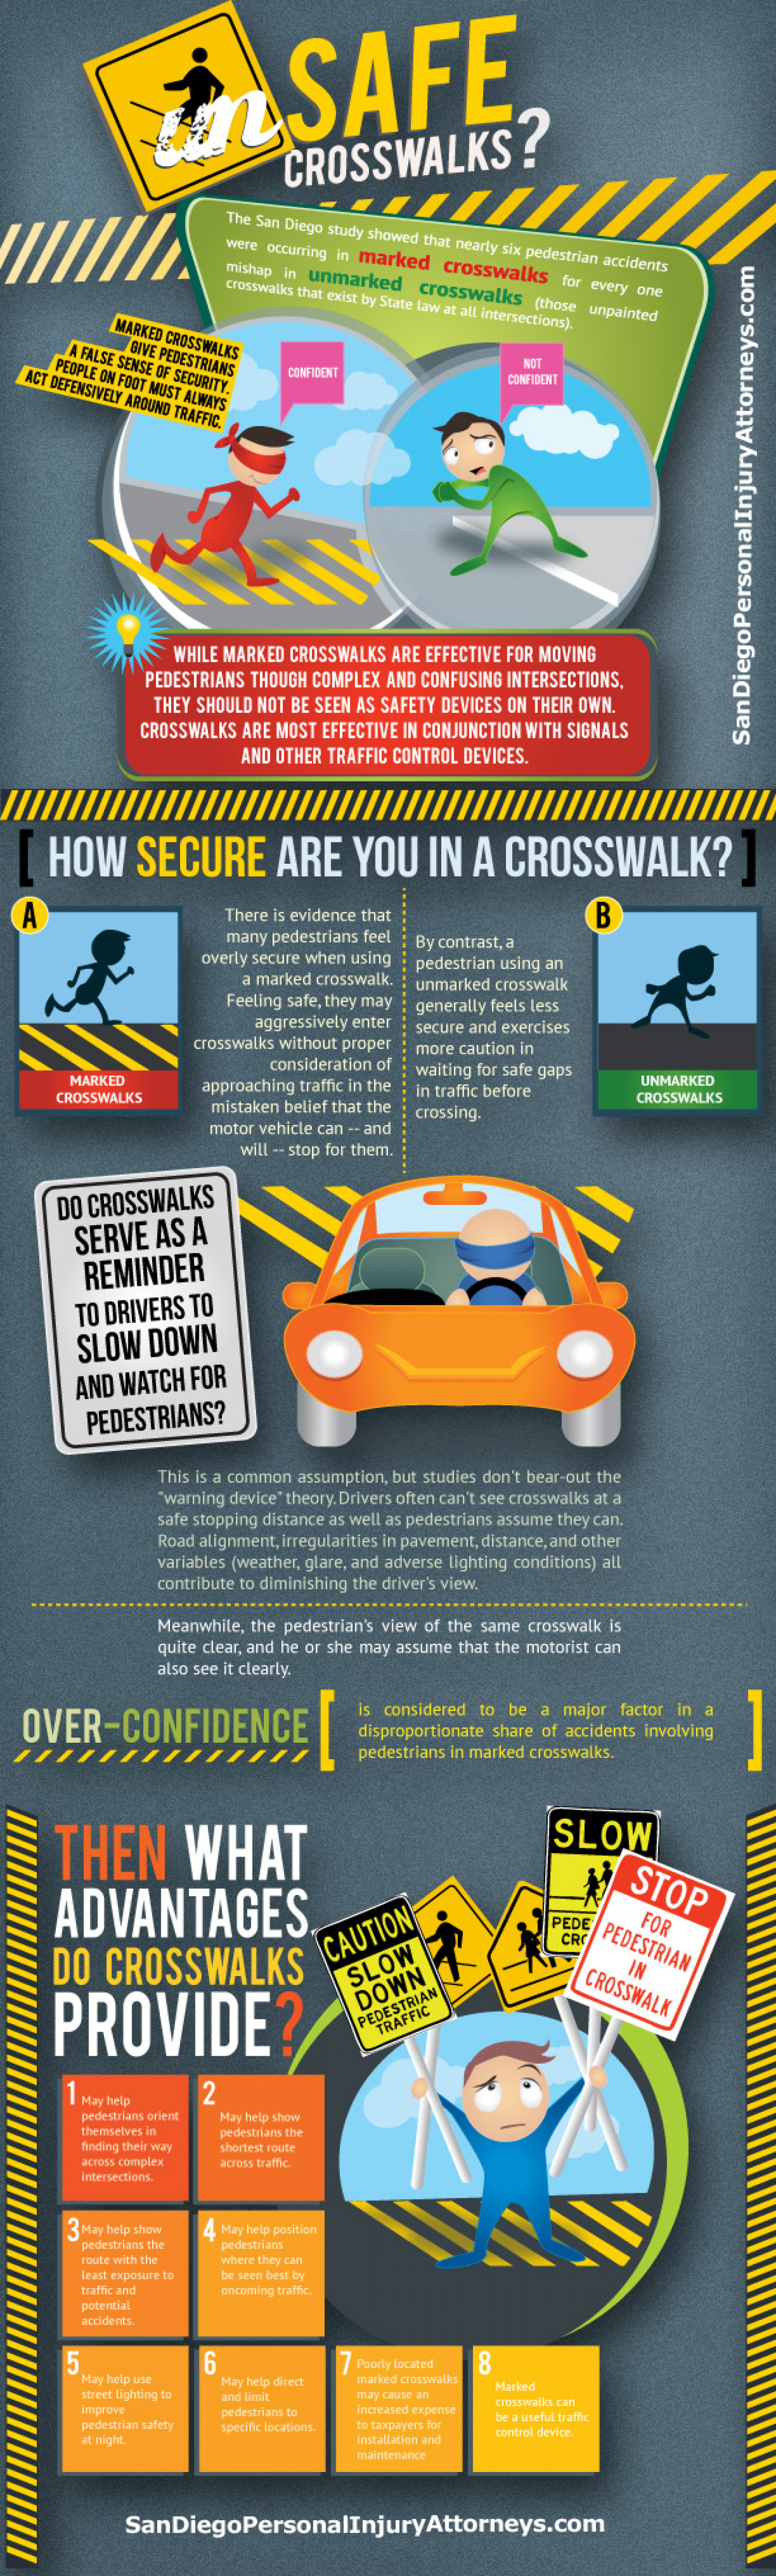 Pedestrian Safety Worse in Marked Crosswalks vs. Unmarked Infographic